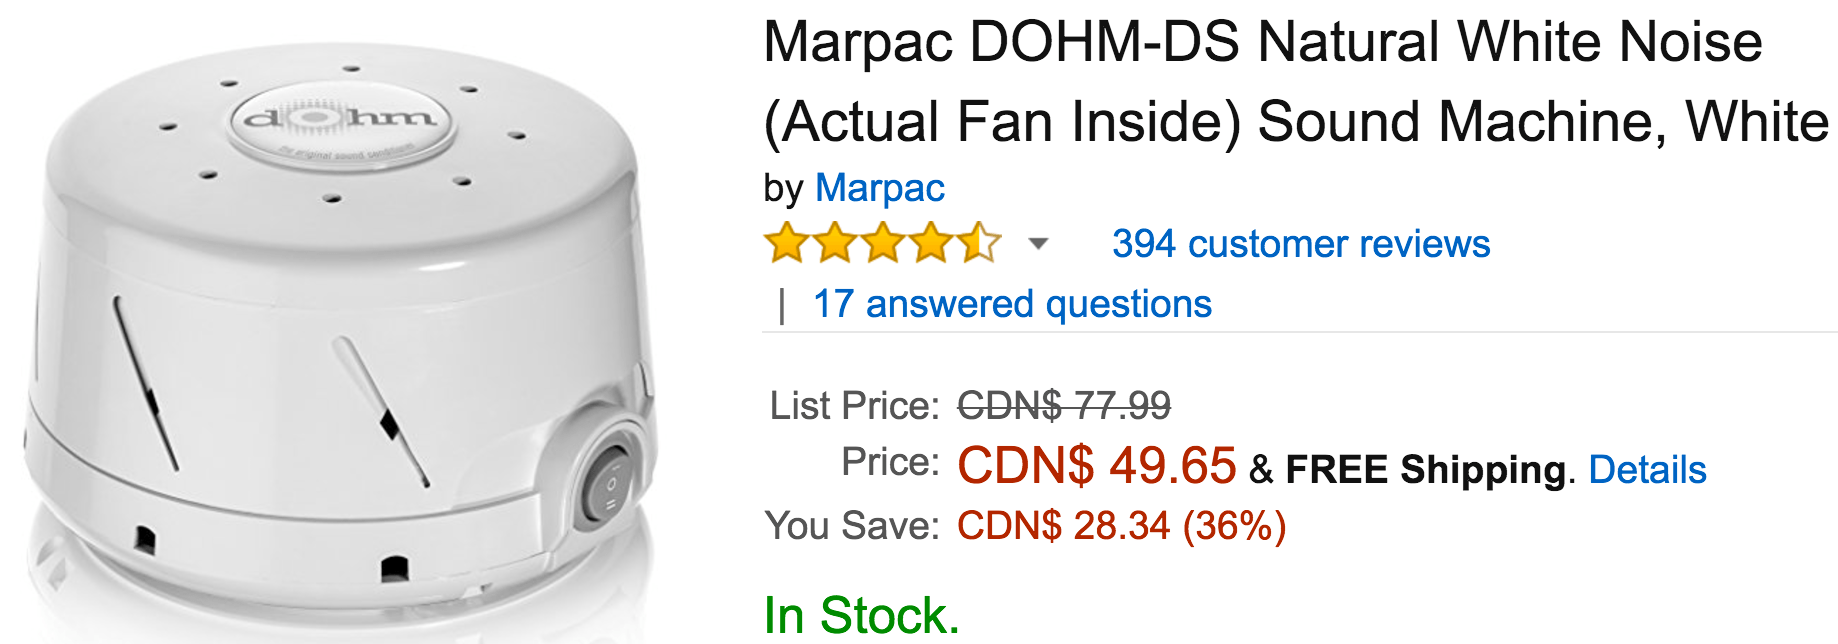 Marpac coupon code